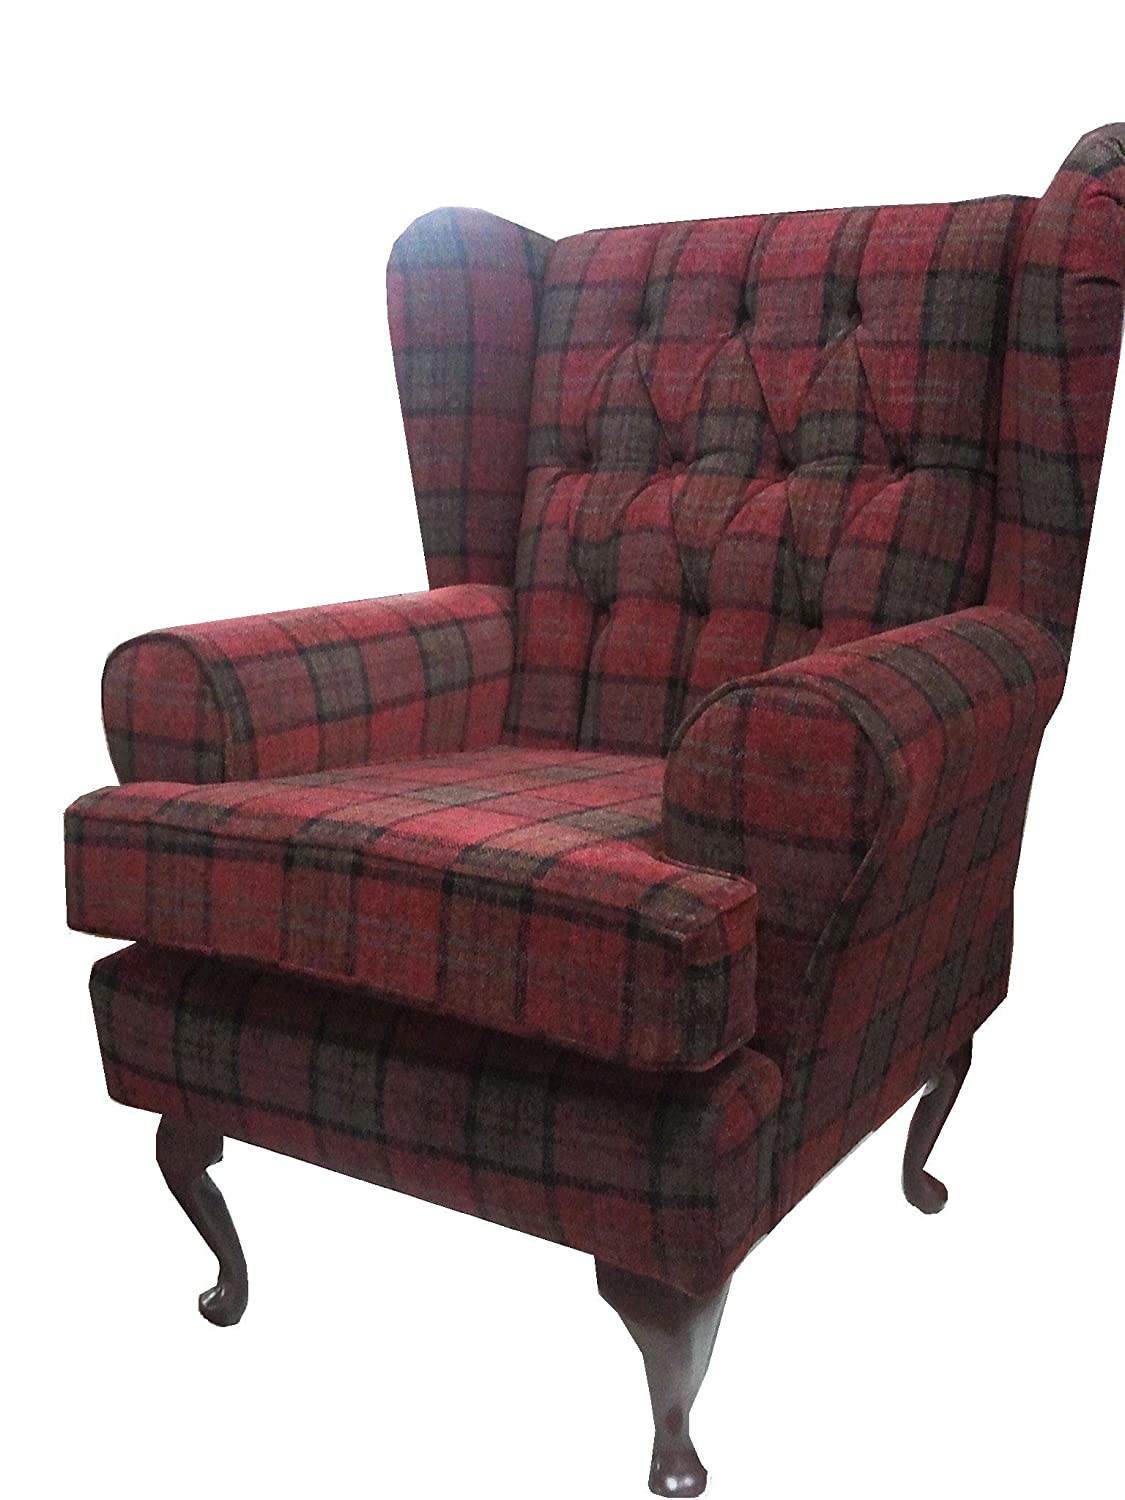 Button Back Red Tartan Fabric Queen Anne Design Wing Back Fireside High  Back Chair. Ideal Bedroom Or Living Room Furniture: Amazon.co.uk: Kitchen U0026  Home Part 65